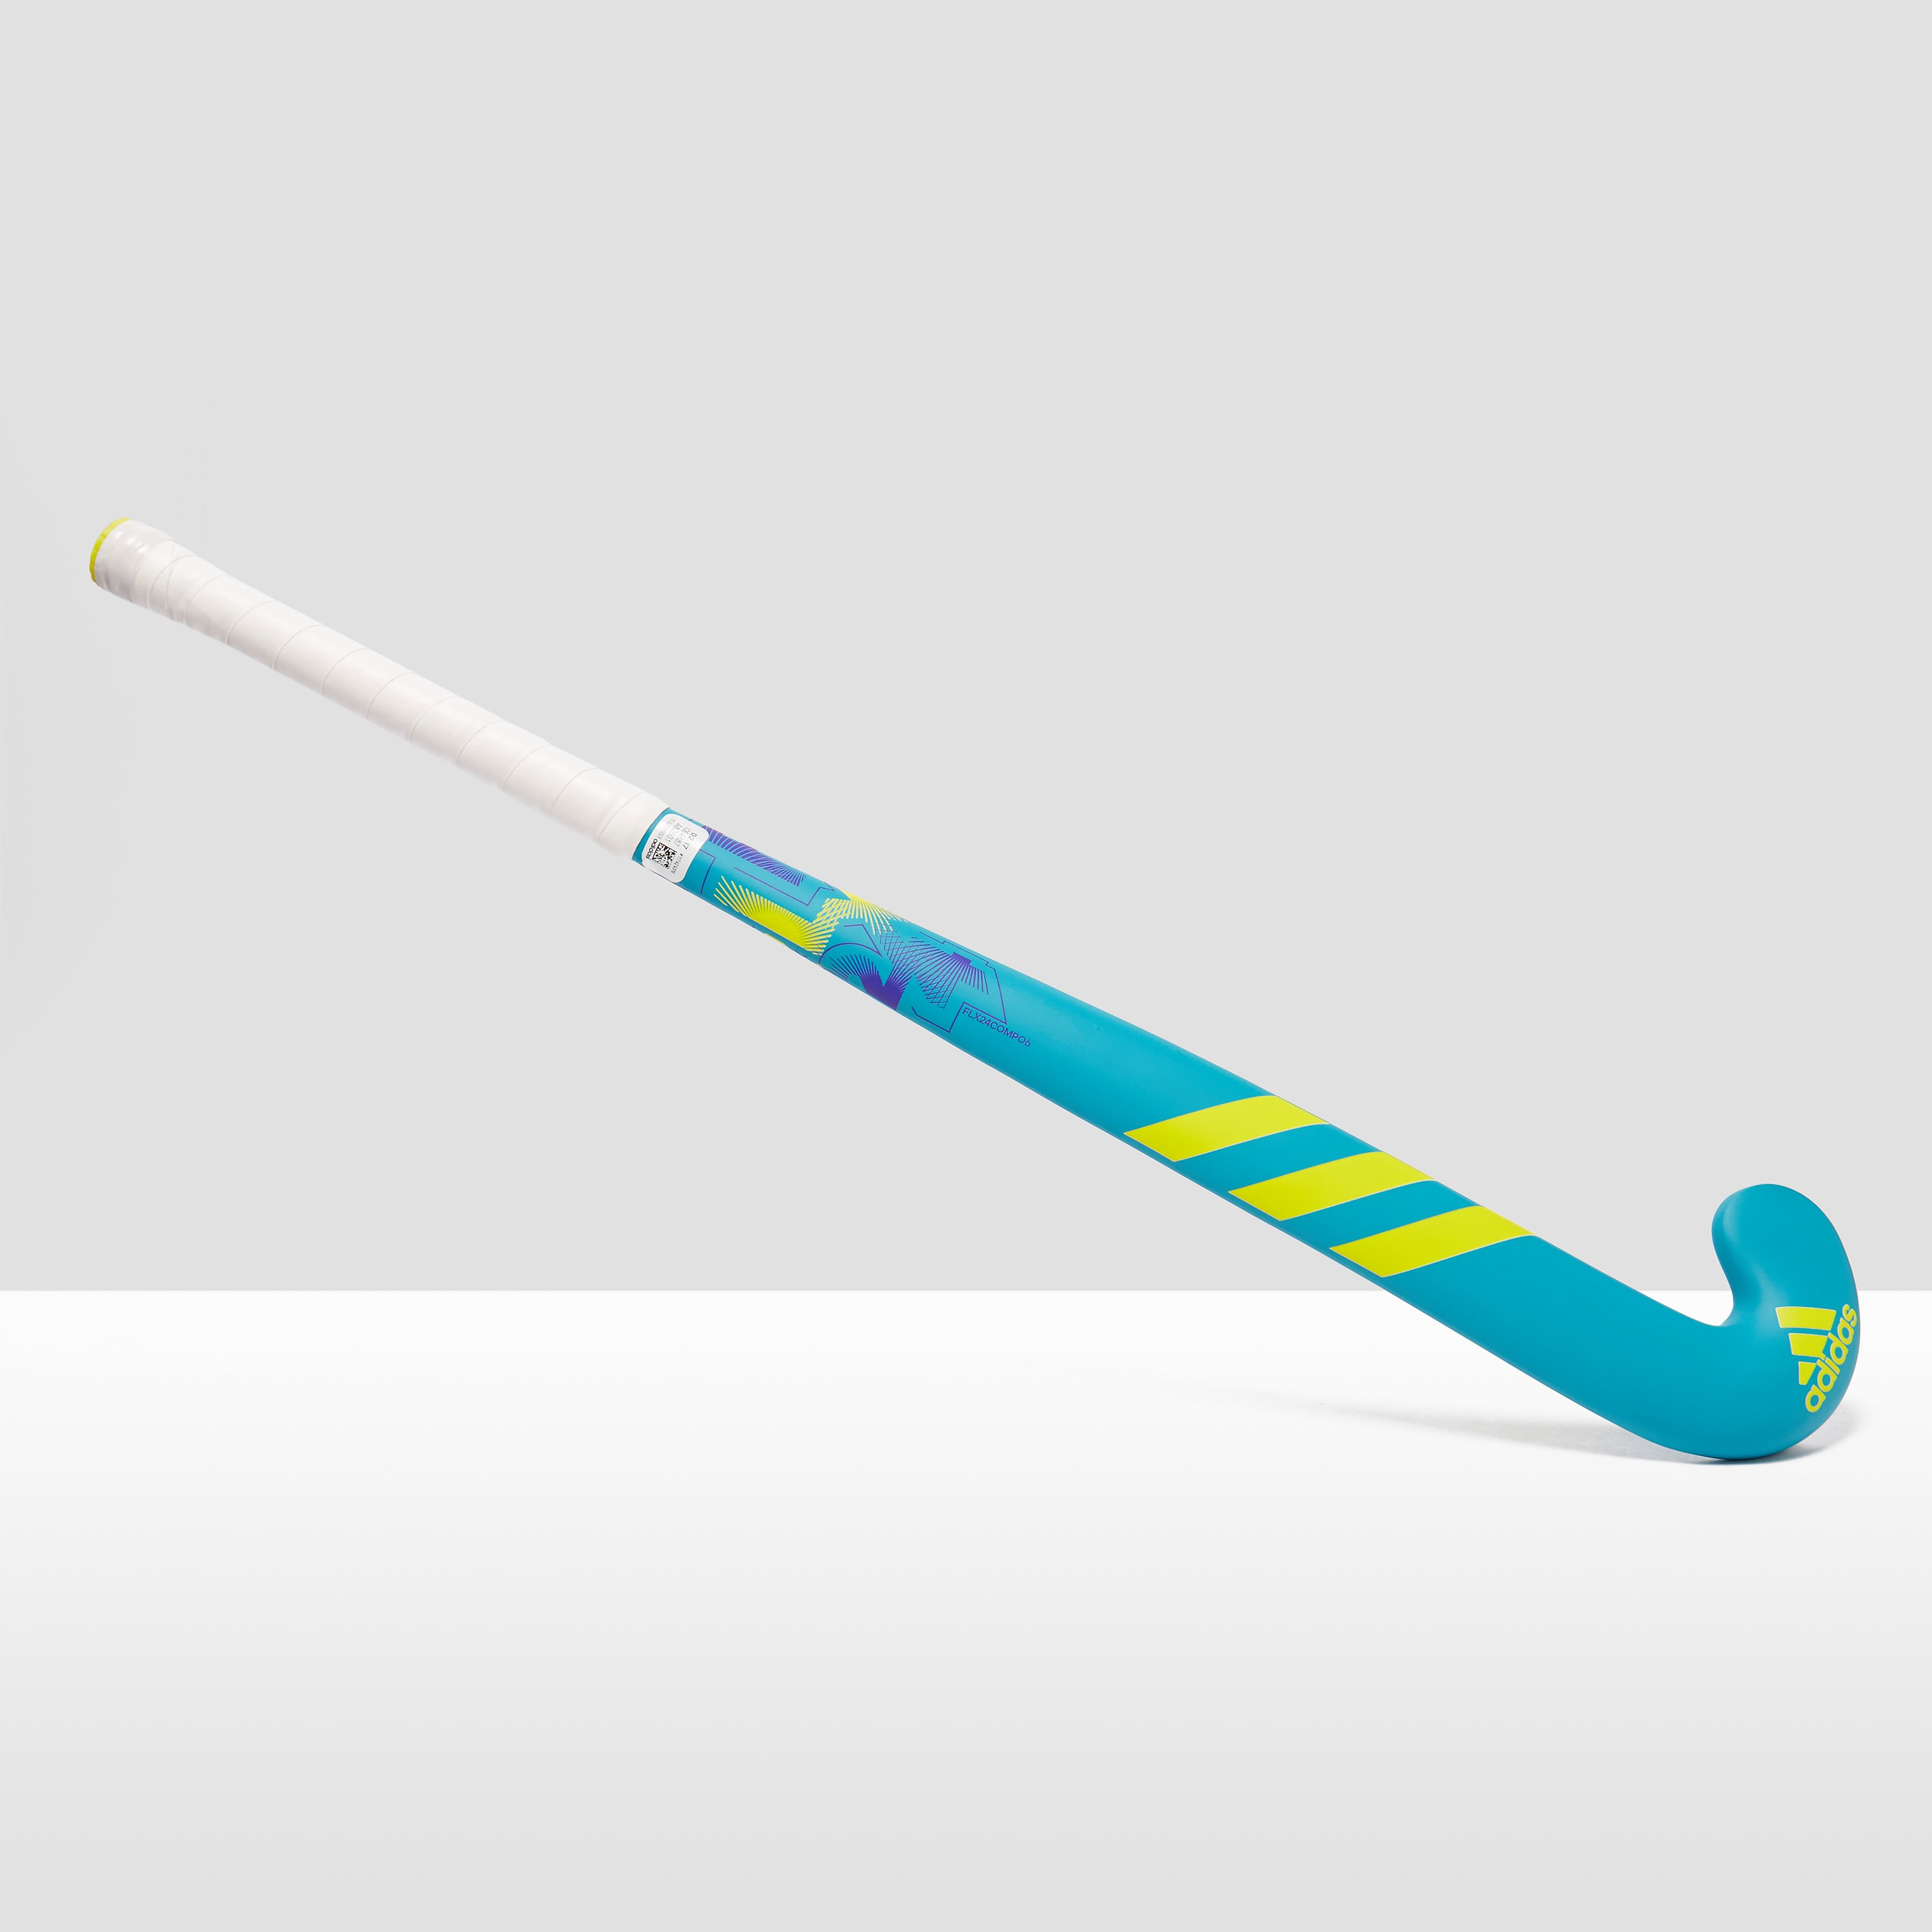 adidas DF24 Compo 6 Hockey Stick